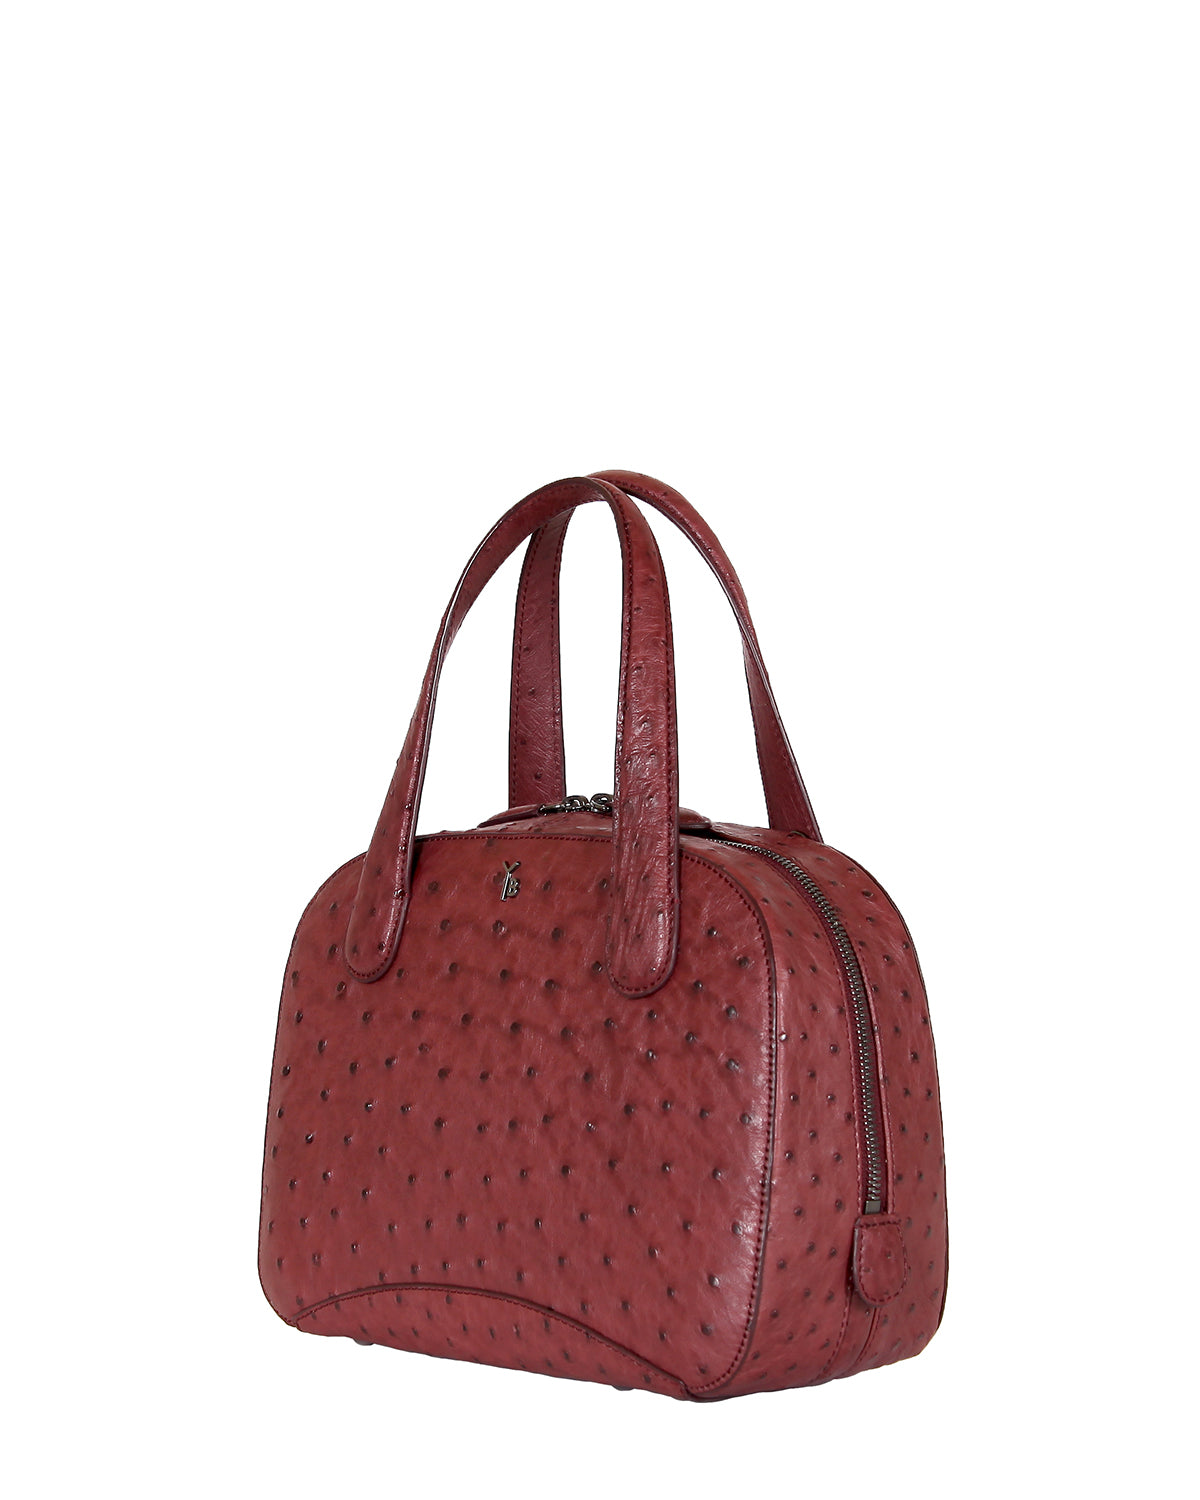 Yara Bashoor Charles Tote Handbag Red Gunmetal Silver Genuine South African Ostrich Angle View